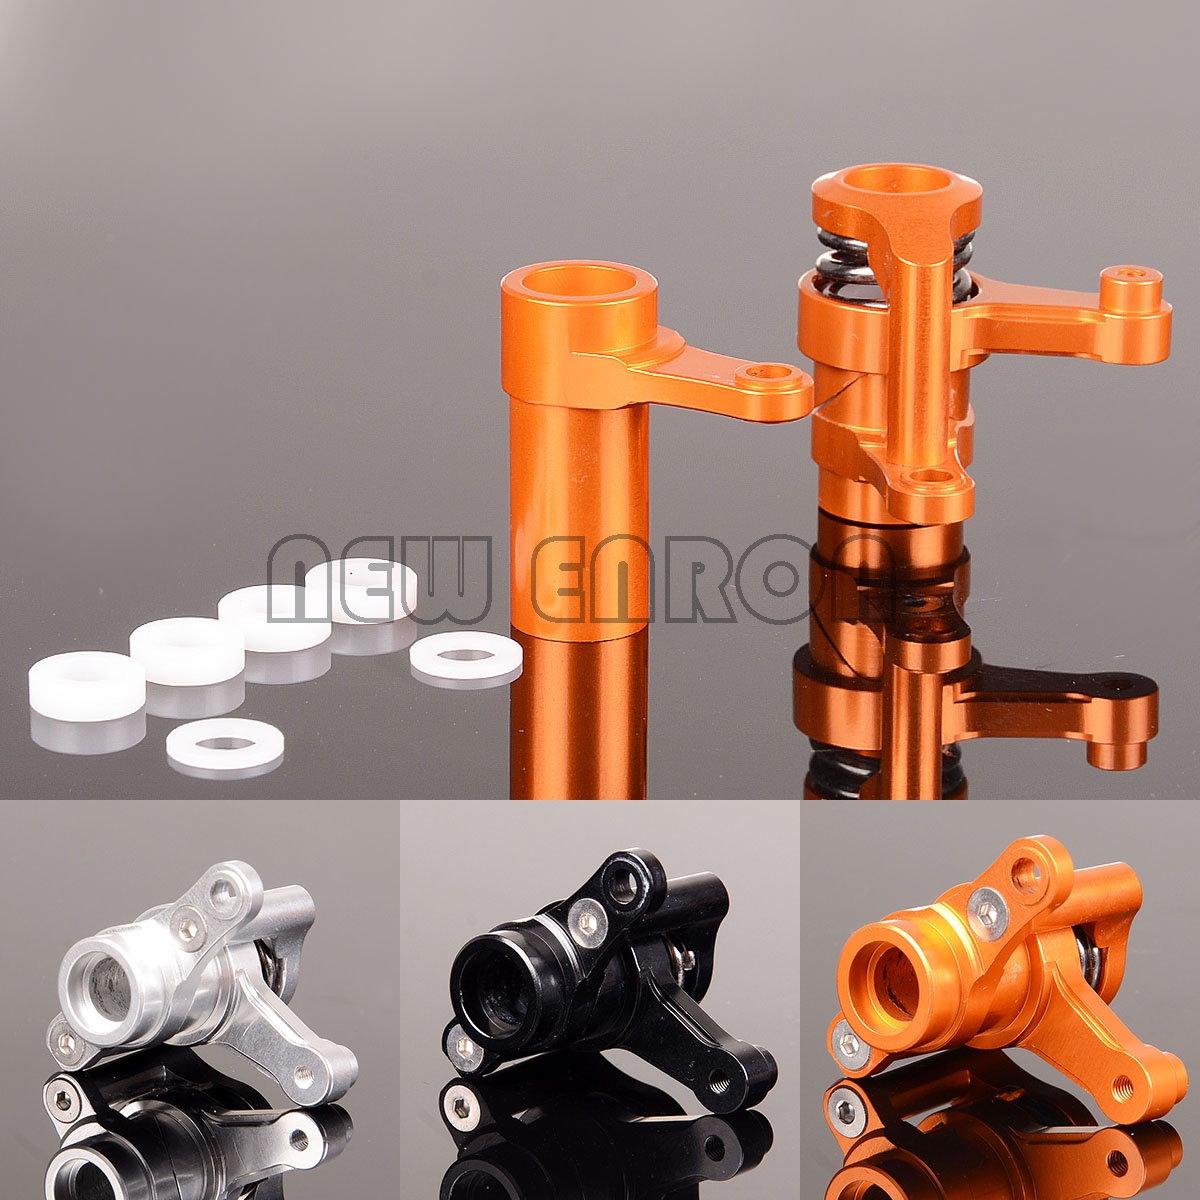 NEW ENRON ALUMINIUM Steering Assembly AX31122 YTL048 FOR AXIAL 1/8 YETI XL 90026 90024 90015 Parts & Accessories     - title=